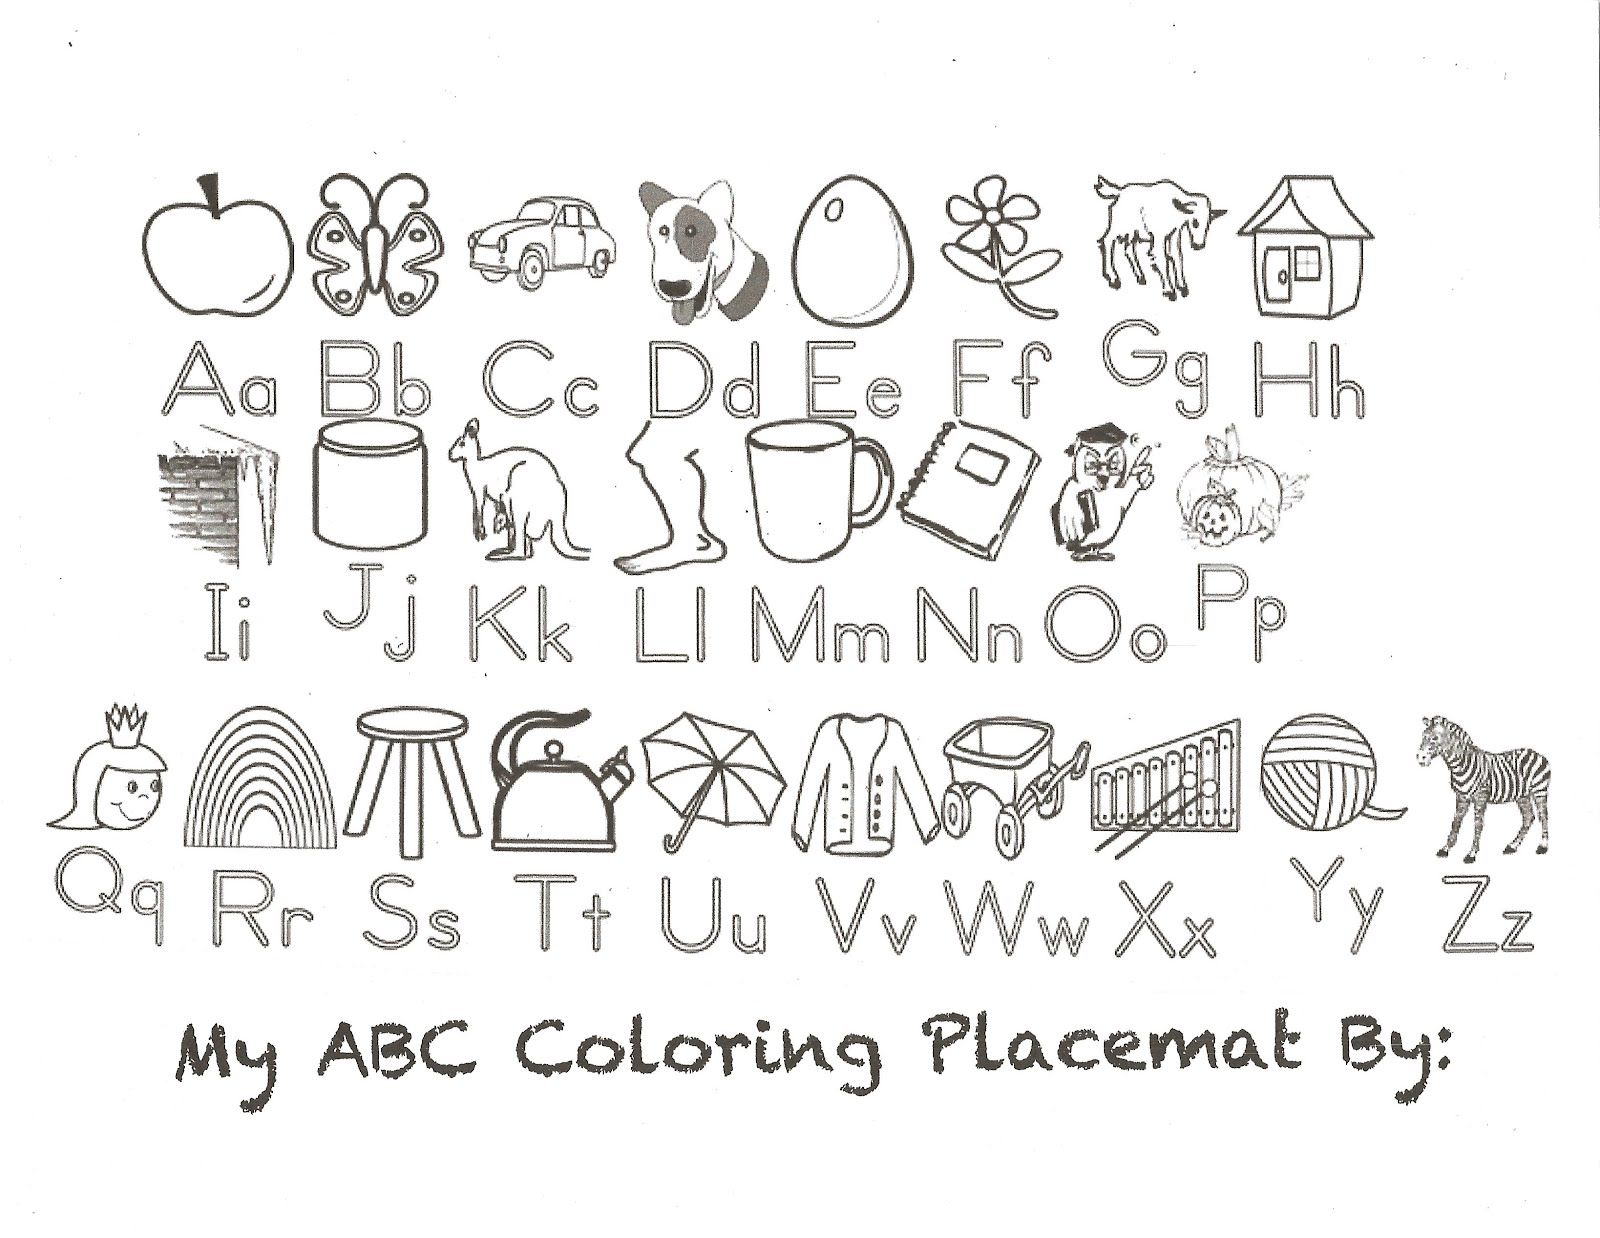 Abc coloring placemat preschool pinterest placemat for Alphabet pages to color